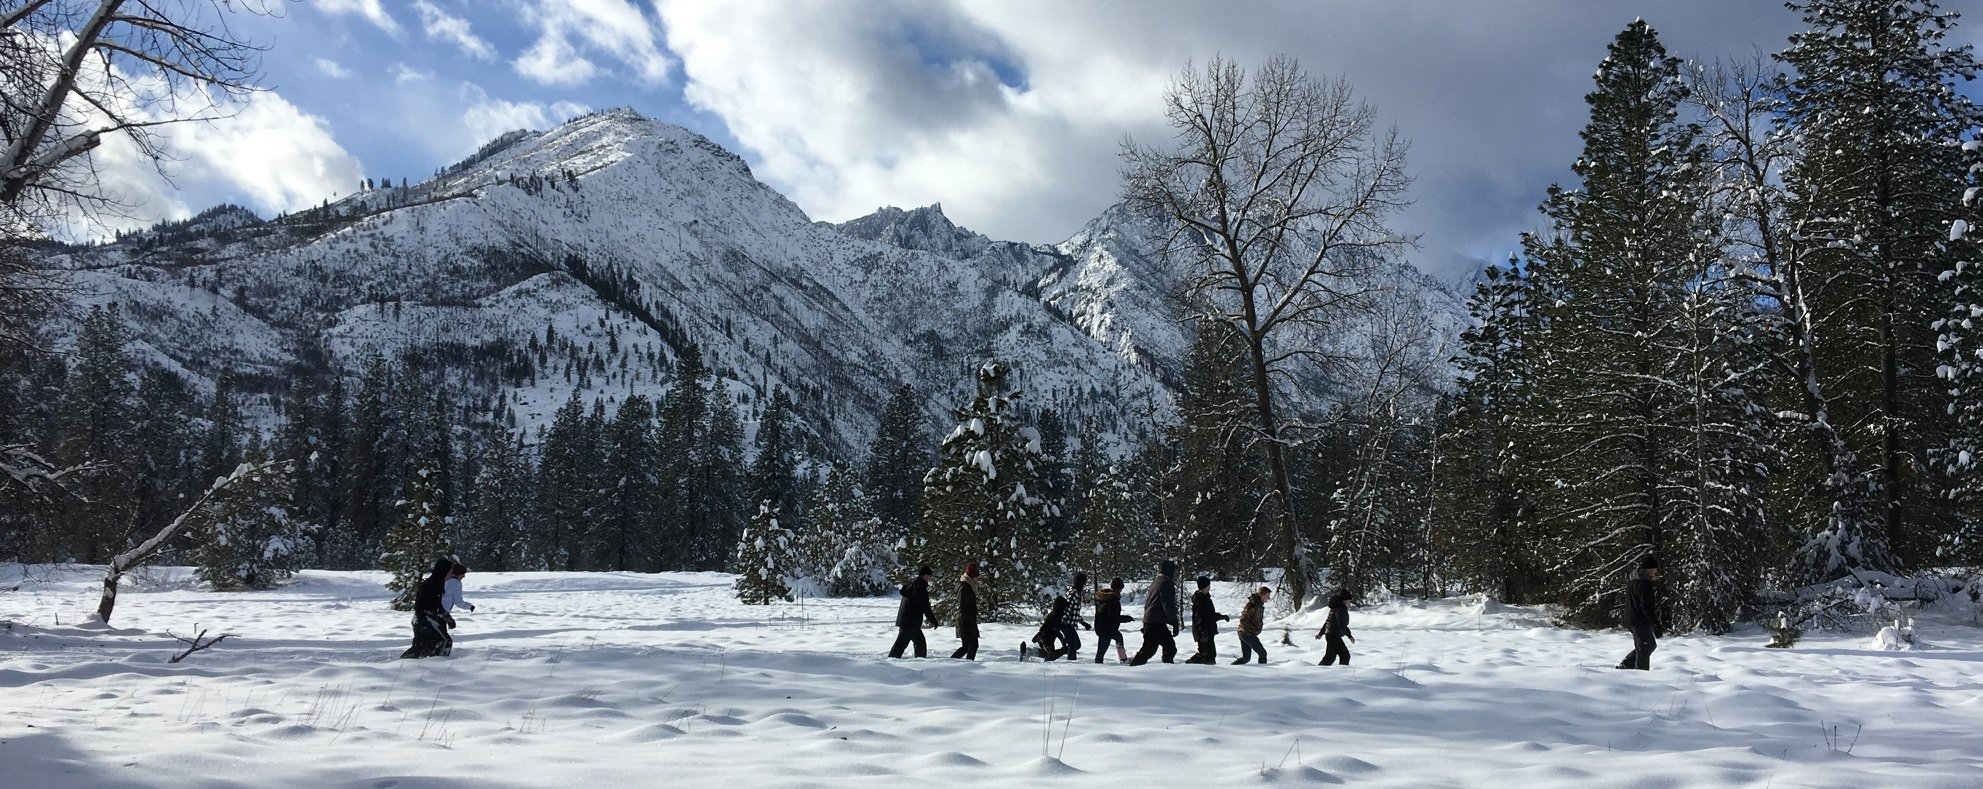 Snowshoe Tour at Fish Hatchery